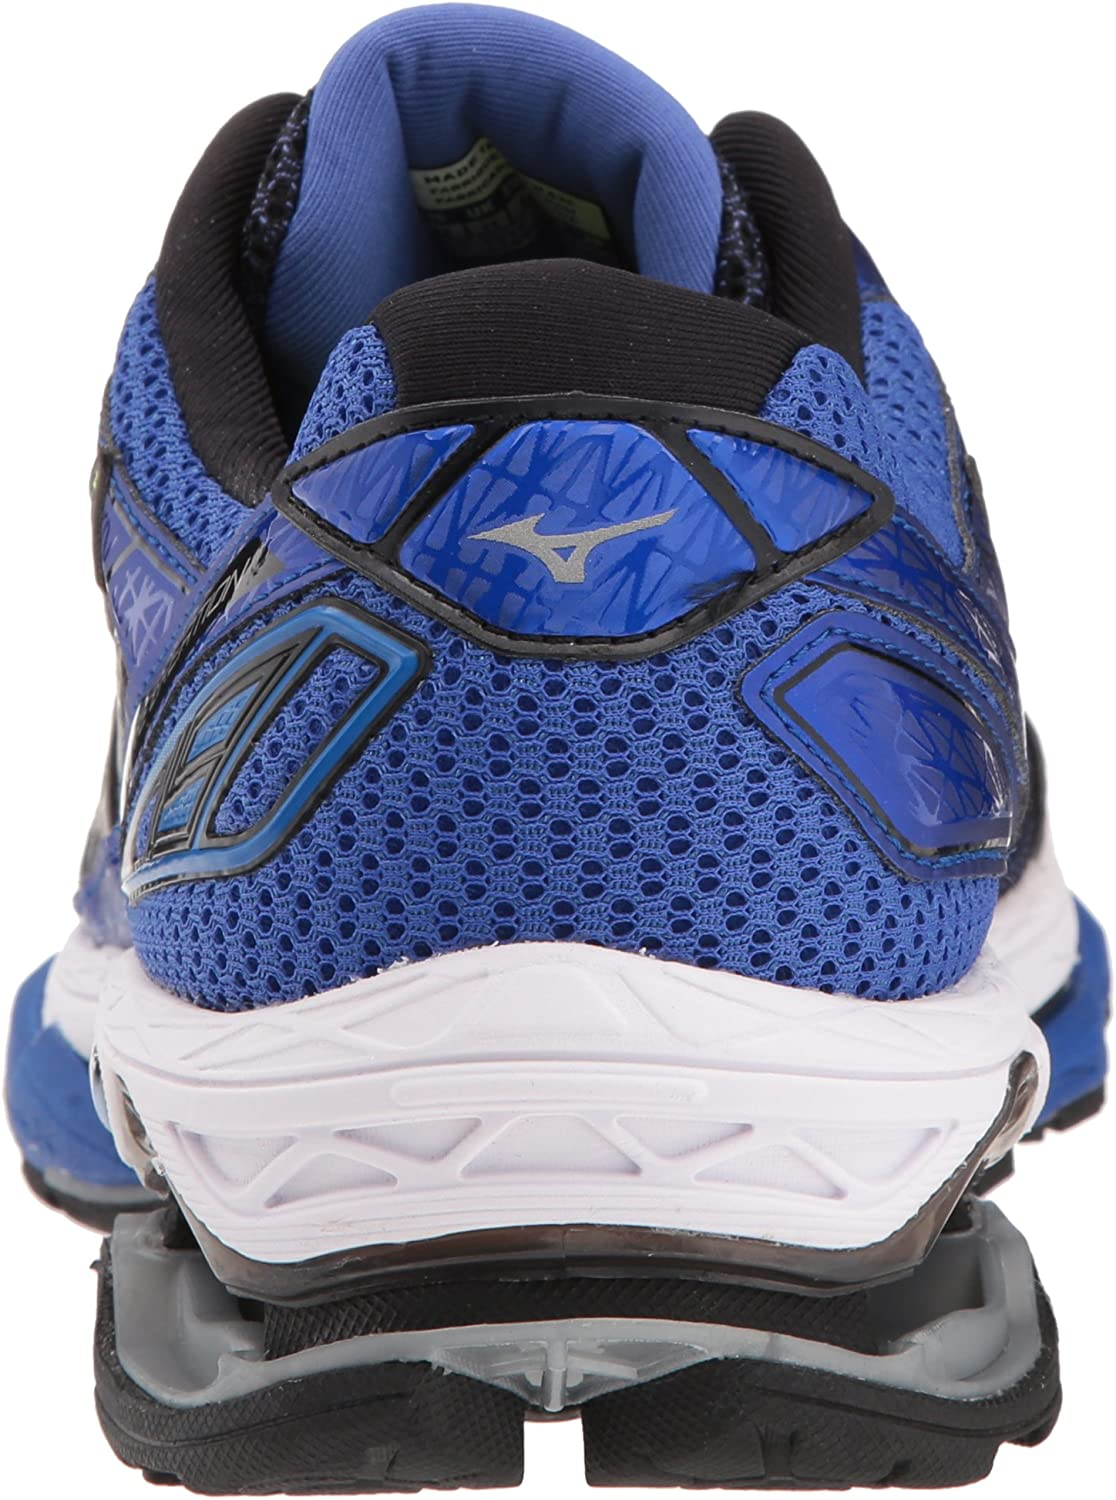 tenis mizuno wave creation 19 pre�o vivo